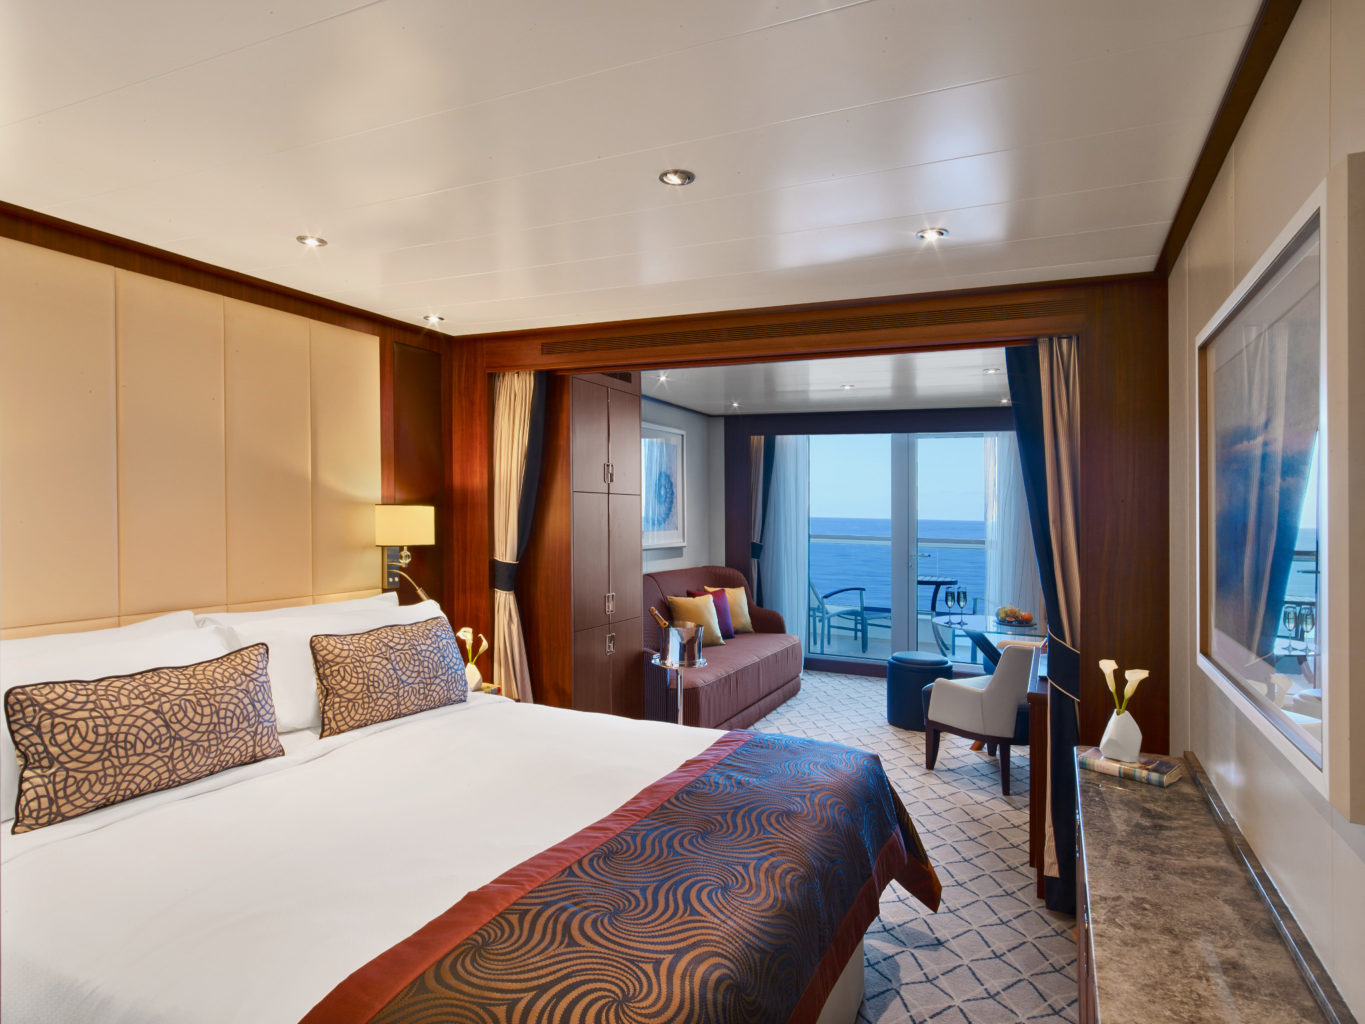 cruise lingo. A picture of the rooms on the Seabourn Encore cruise ship.